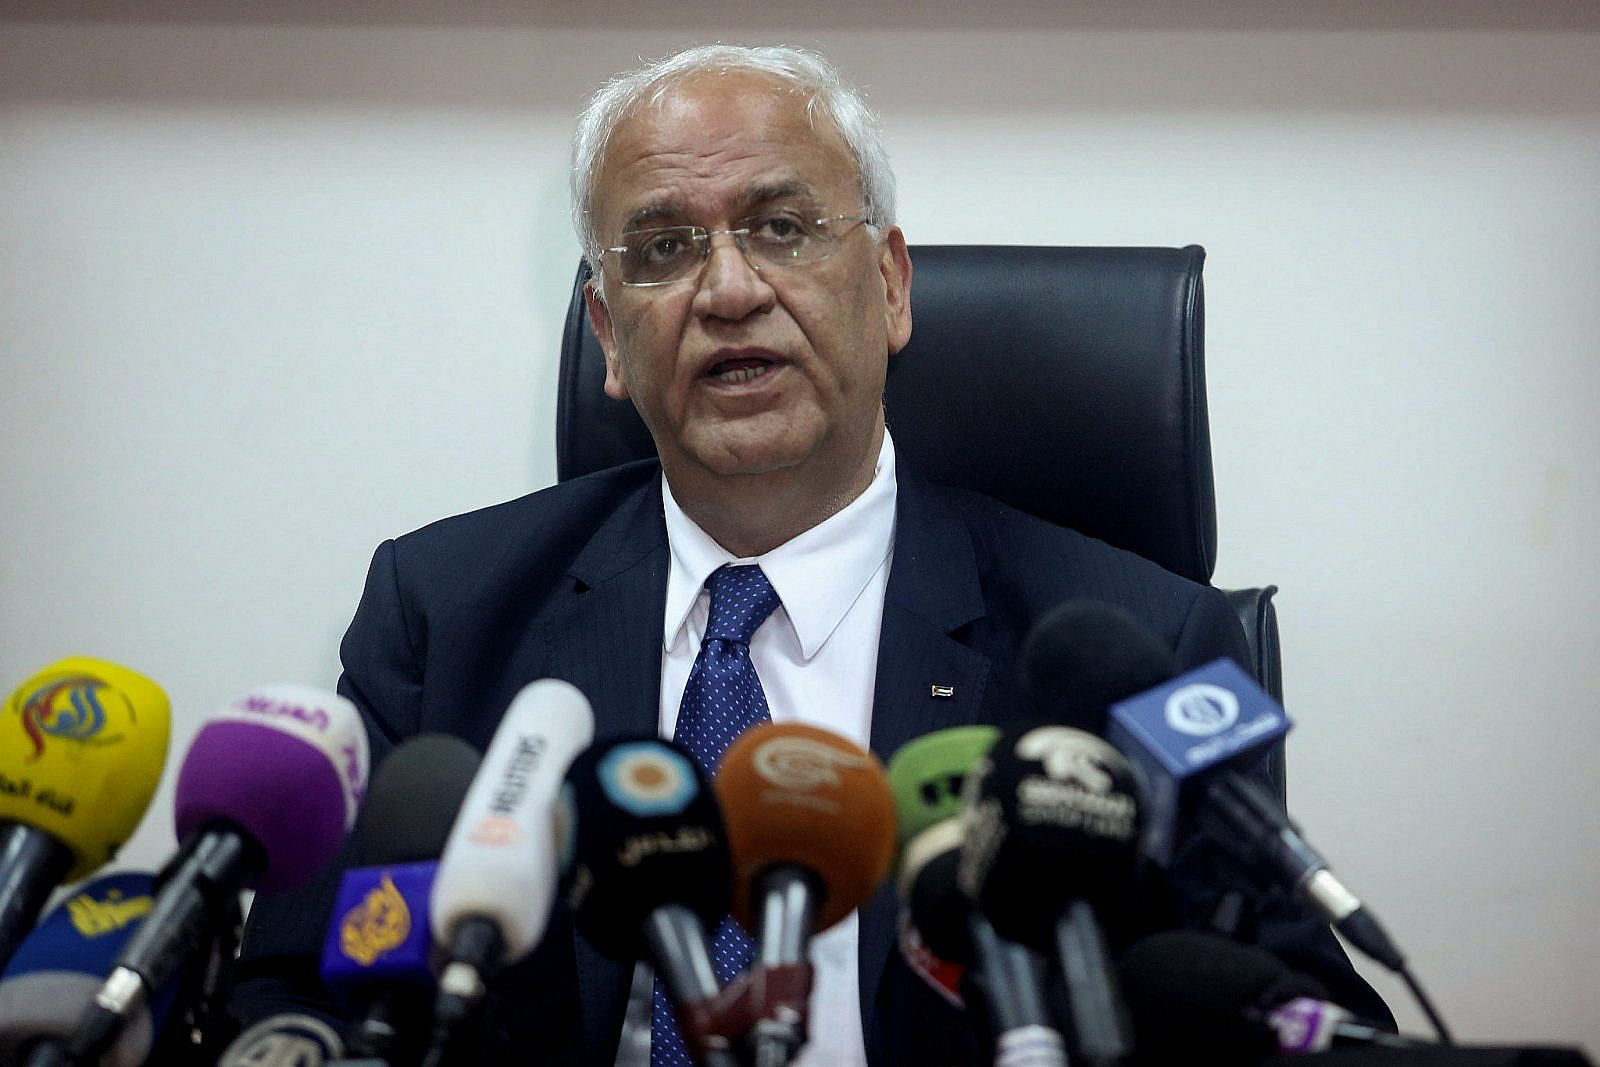 Palestinian chief negotiator and PLO Secretary General, Saeb Erekat, speaks during a press conference in the West Bank city of Jericho, February 15, 2017. (Flash90)